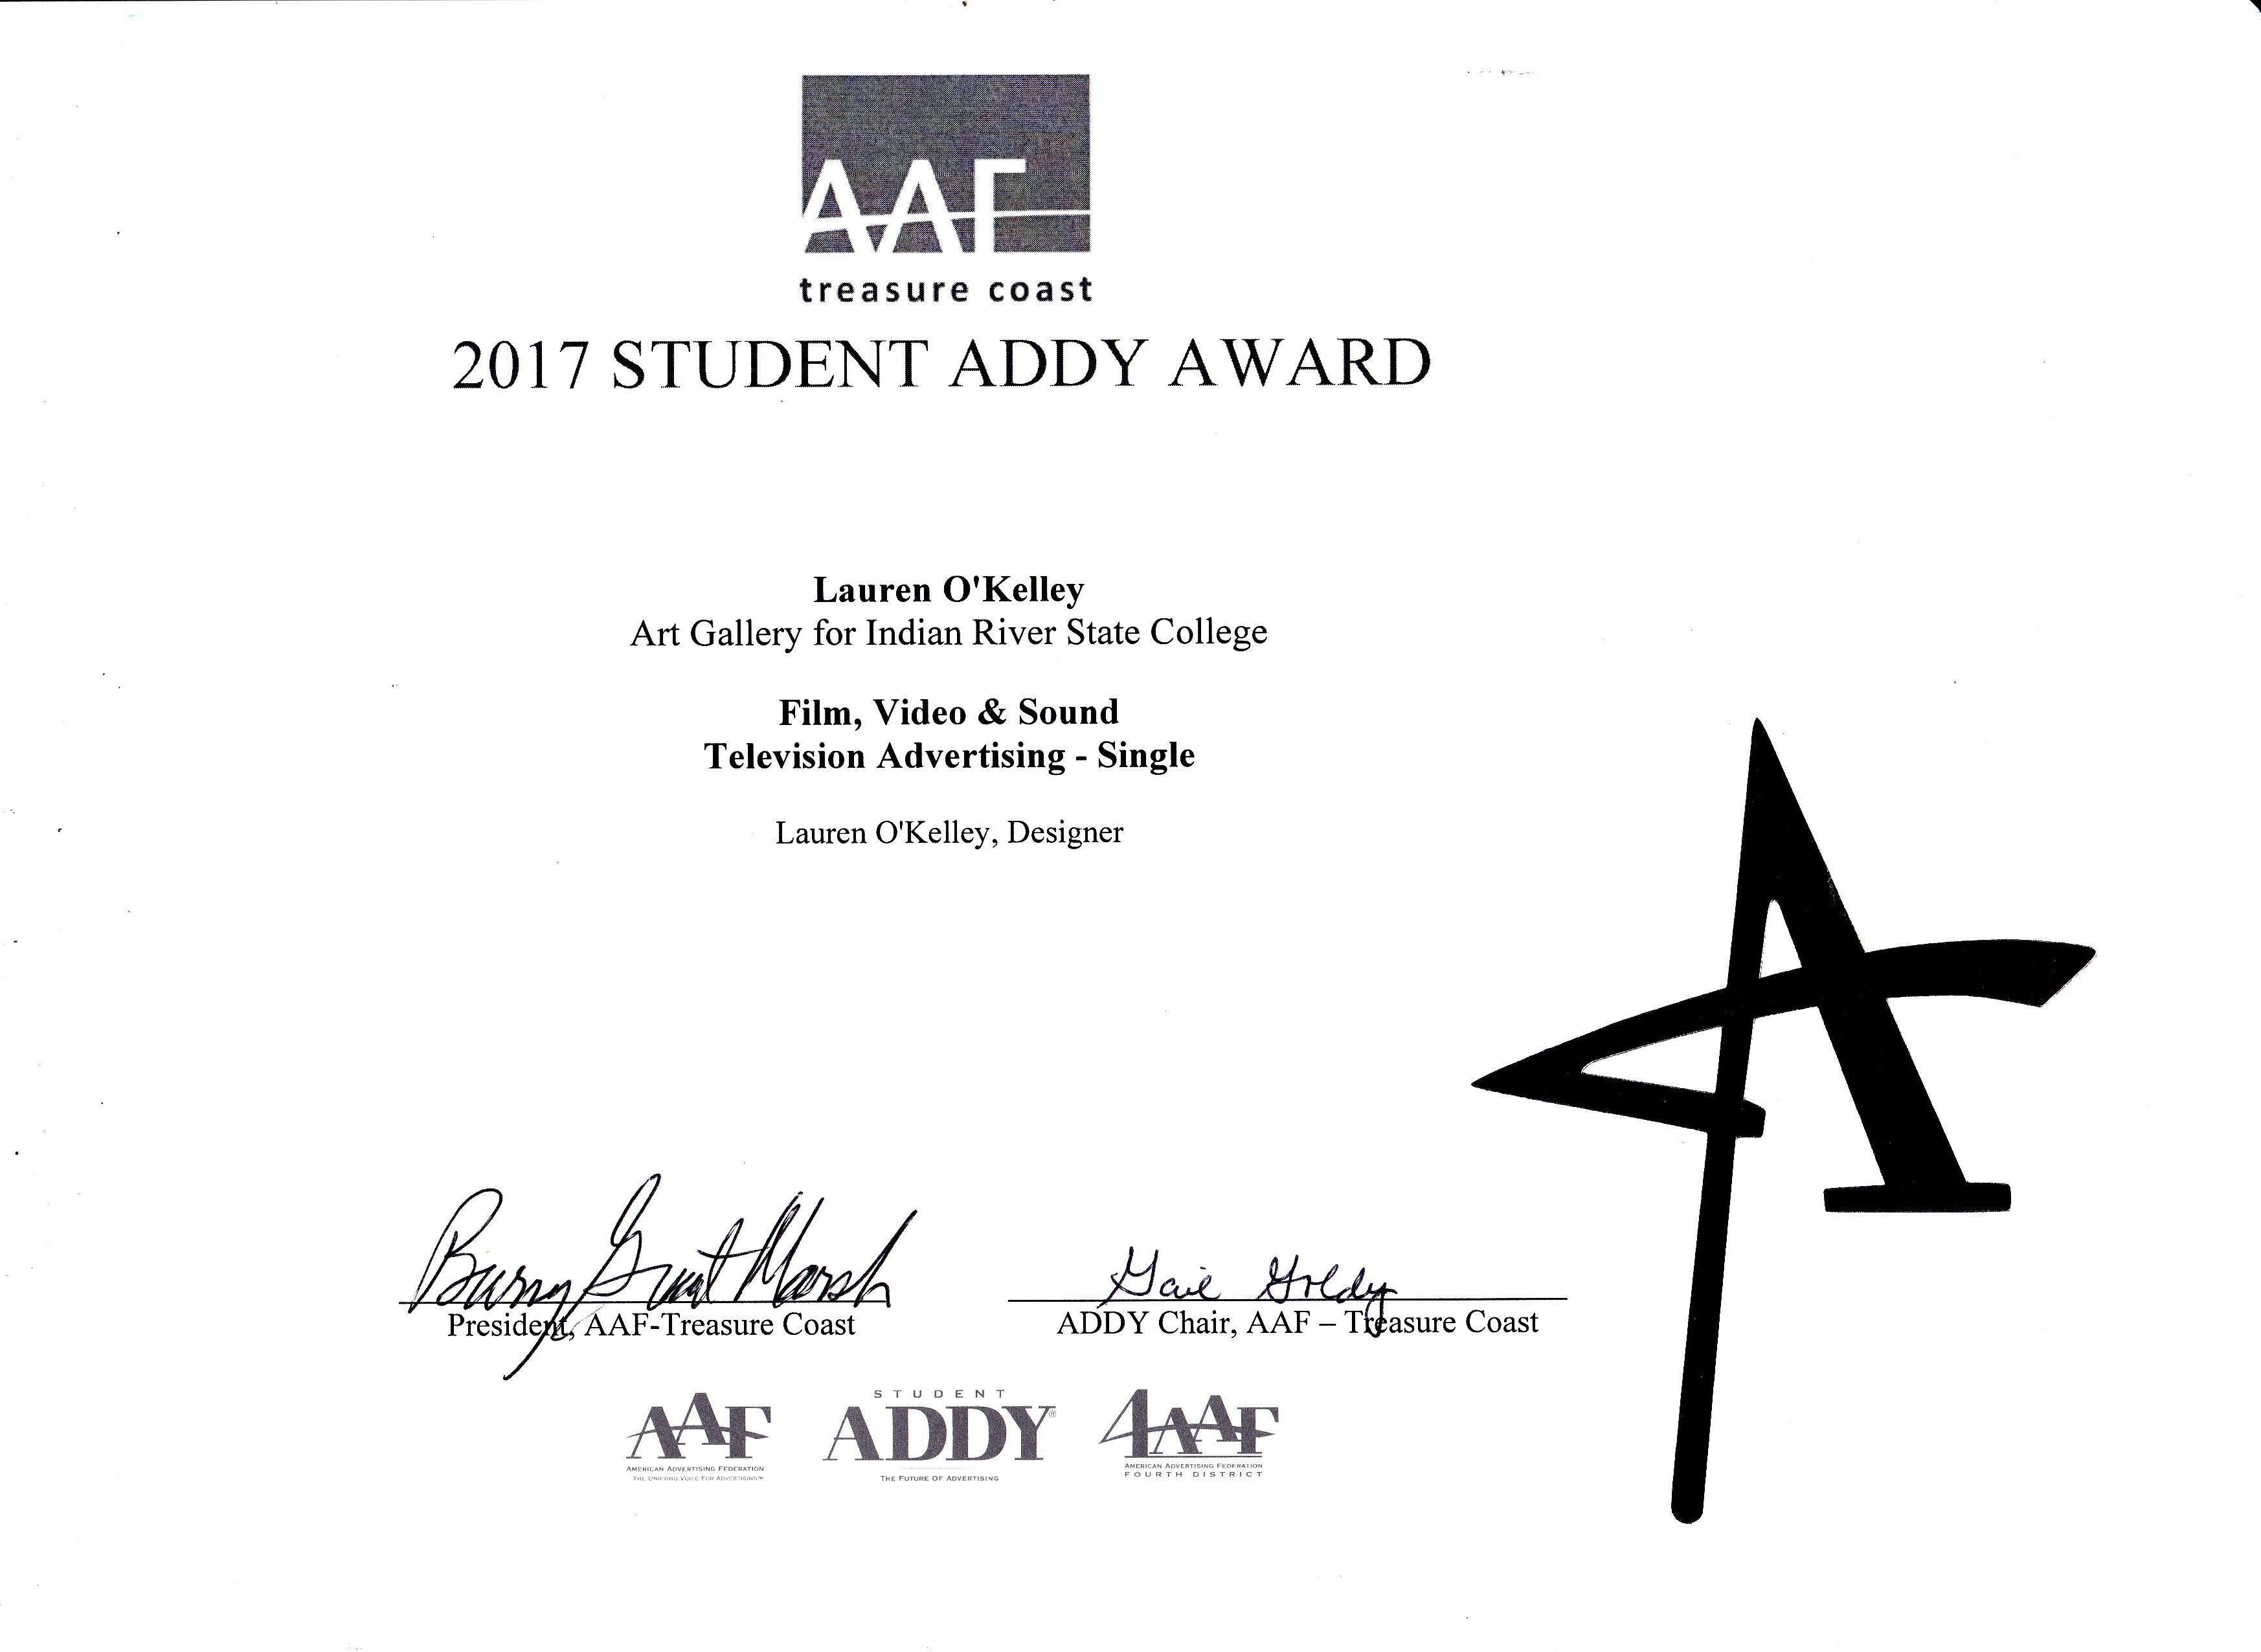 American Advertising Federation 2017 AAF Addy Awards